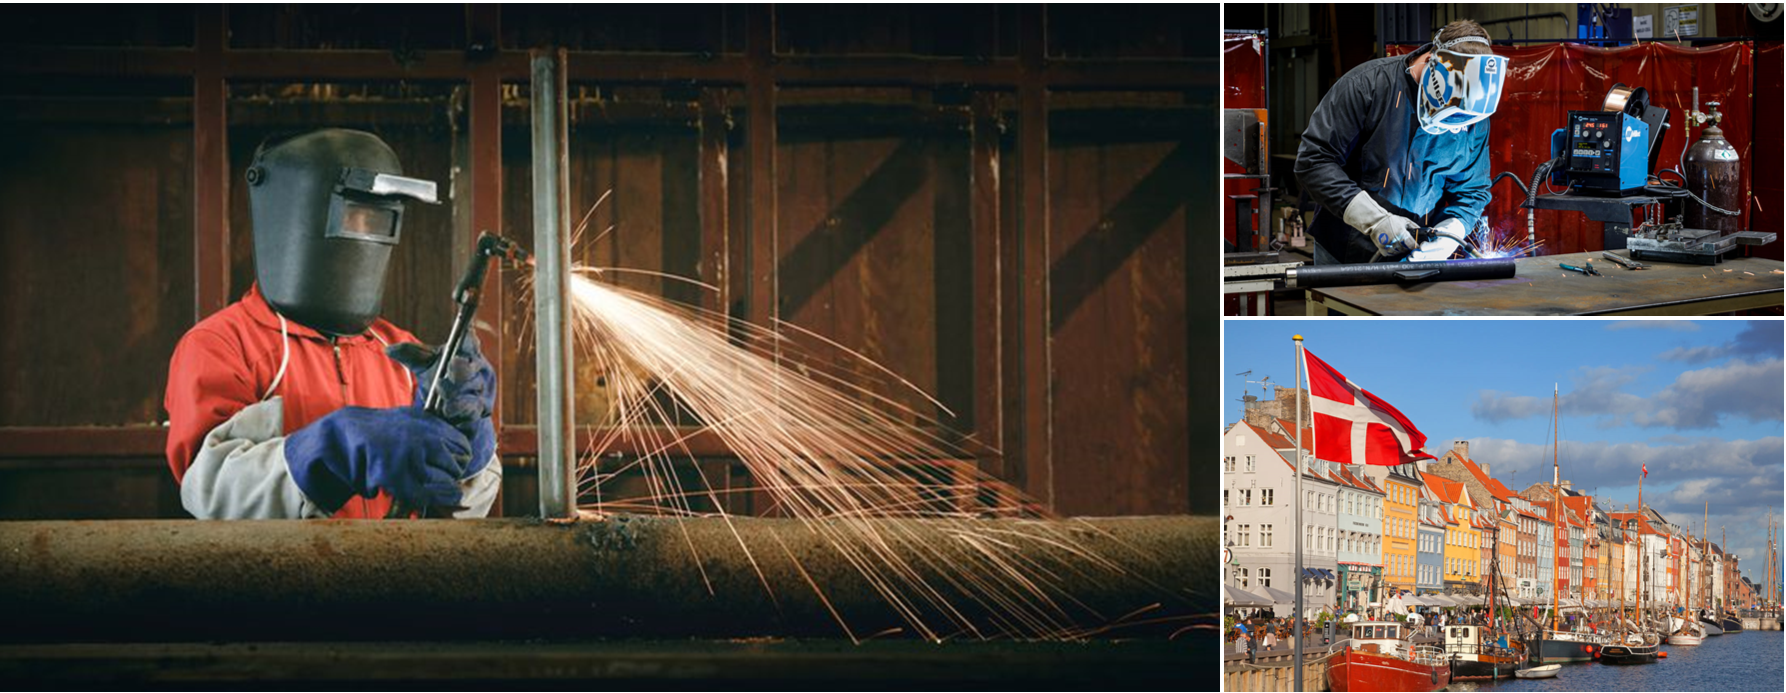 Welder jobs in Denmark